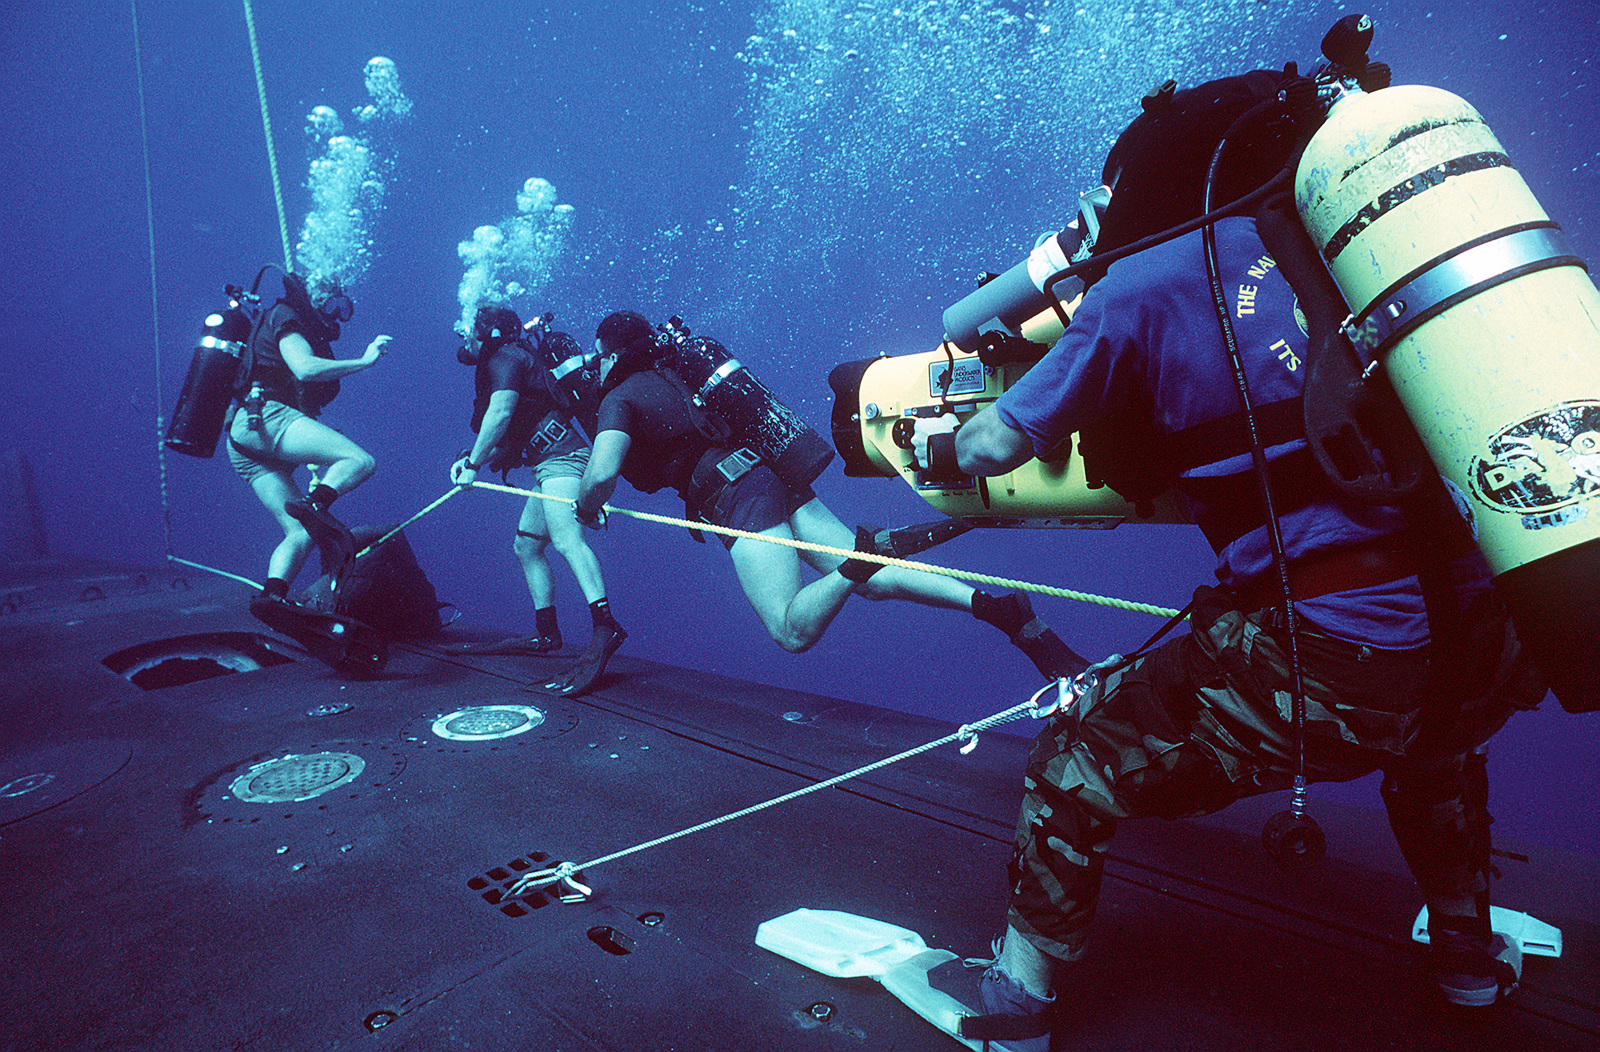 A photographer's mate/diver films the manuevers as members of a Navy Sea-Air-Land (SEAL) team swims along a line rigged to the hull of the submerged nuclear-powered strategic missile submarine USS WOODROW WILSON (SSBN-624) during lock-out procedures off the coast of Puerto Rico